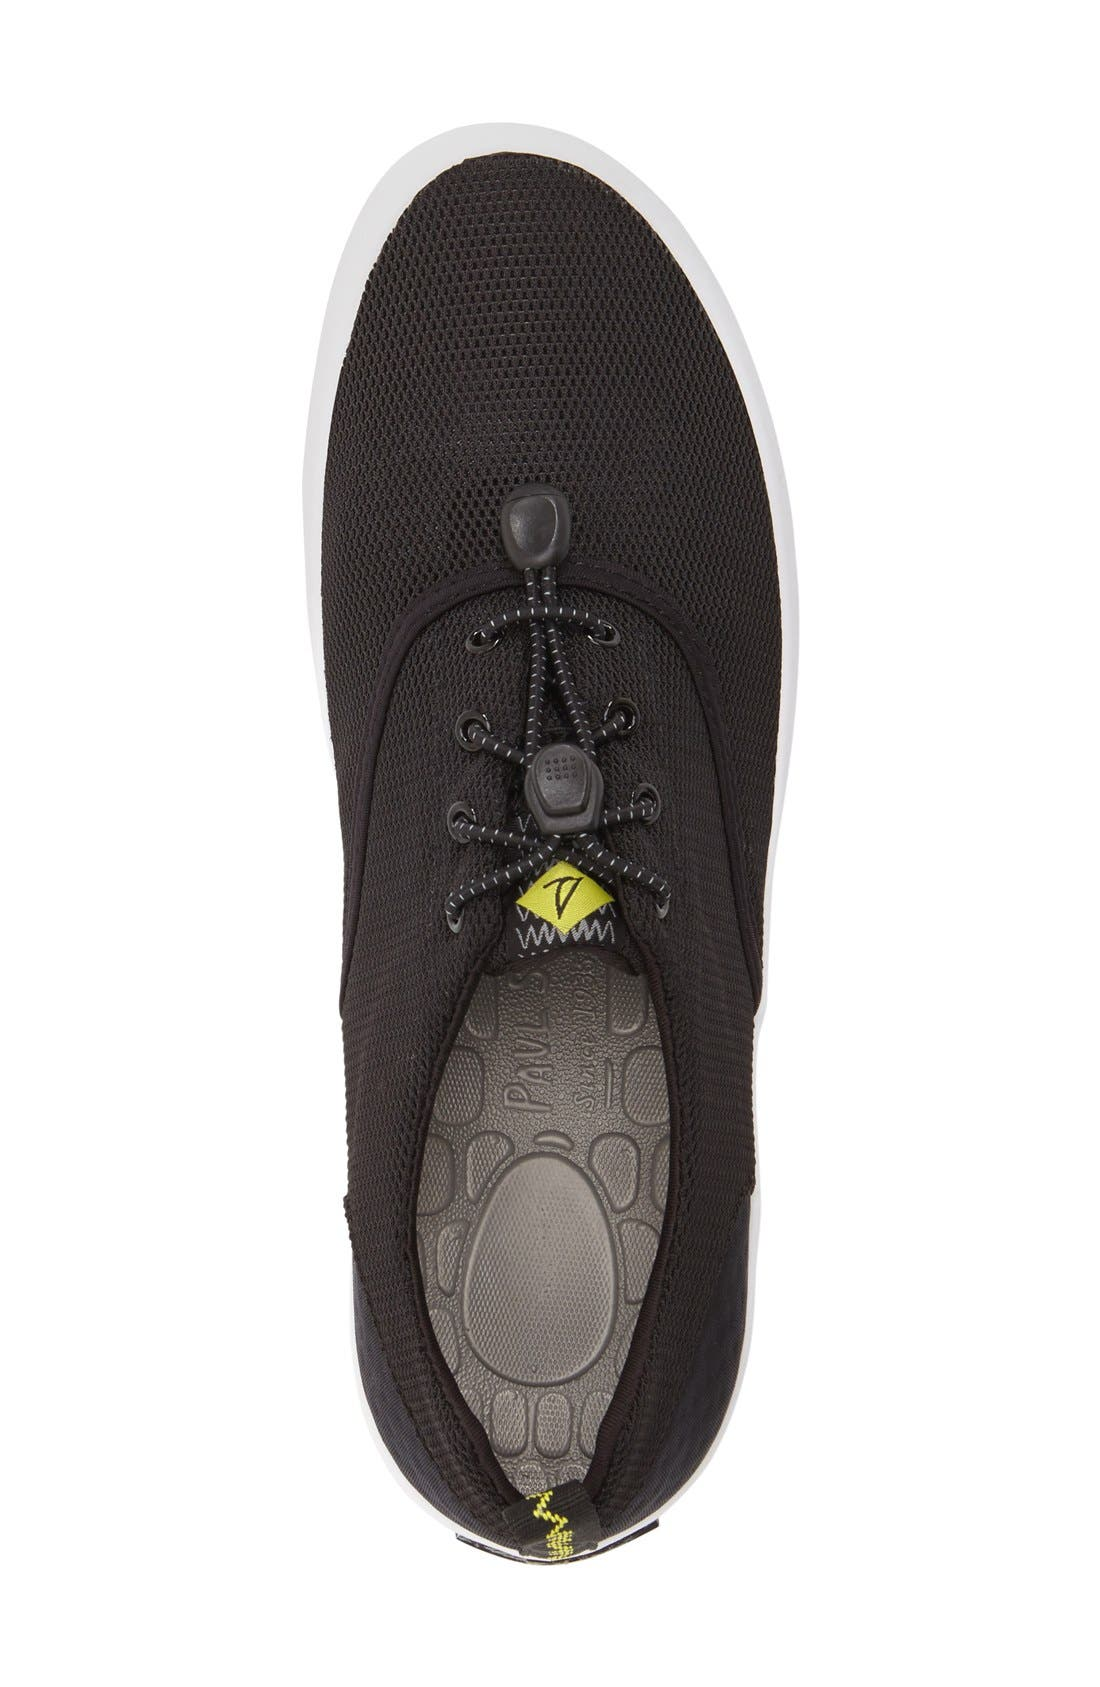 Paul Sperry Flex Deck Sneaker,                             Alternate thumbnail 2, color,                             001